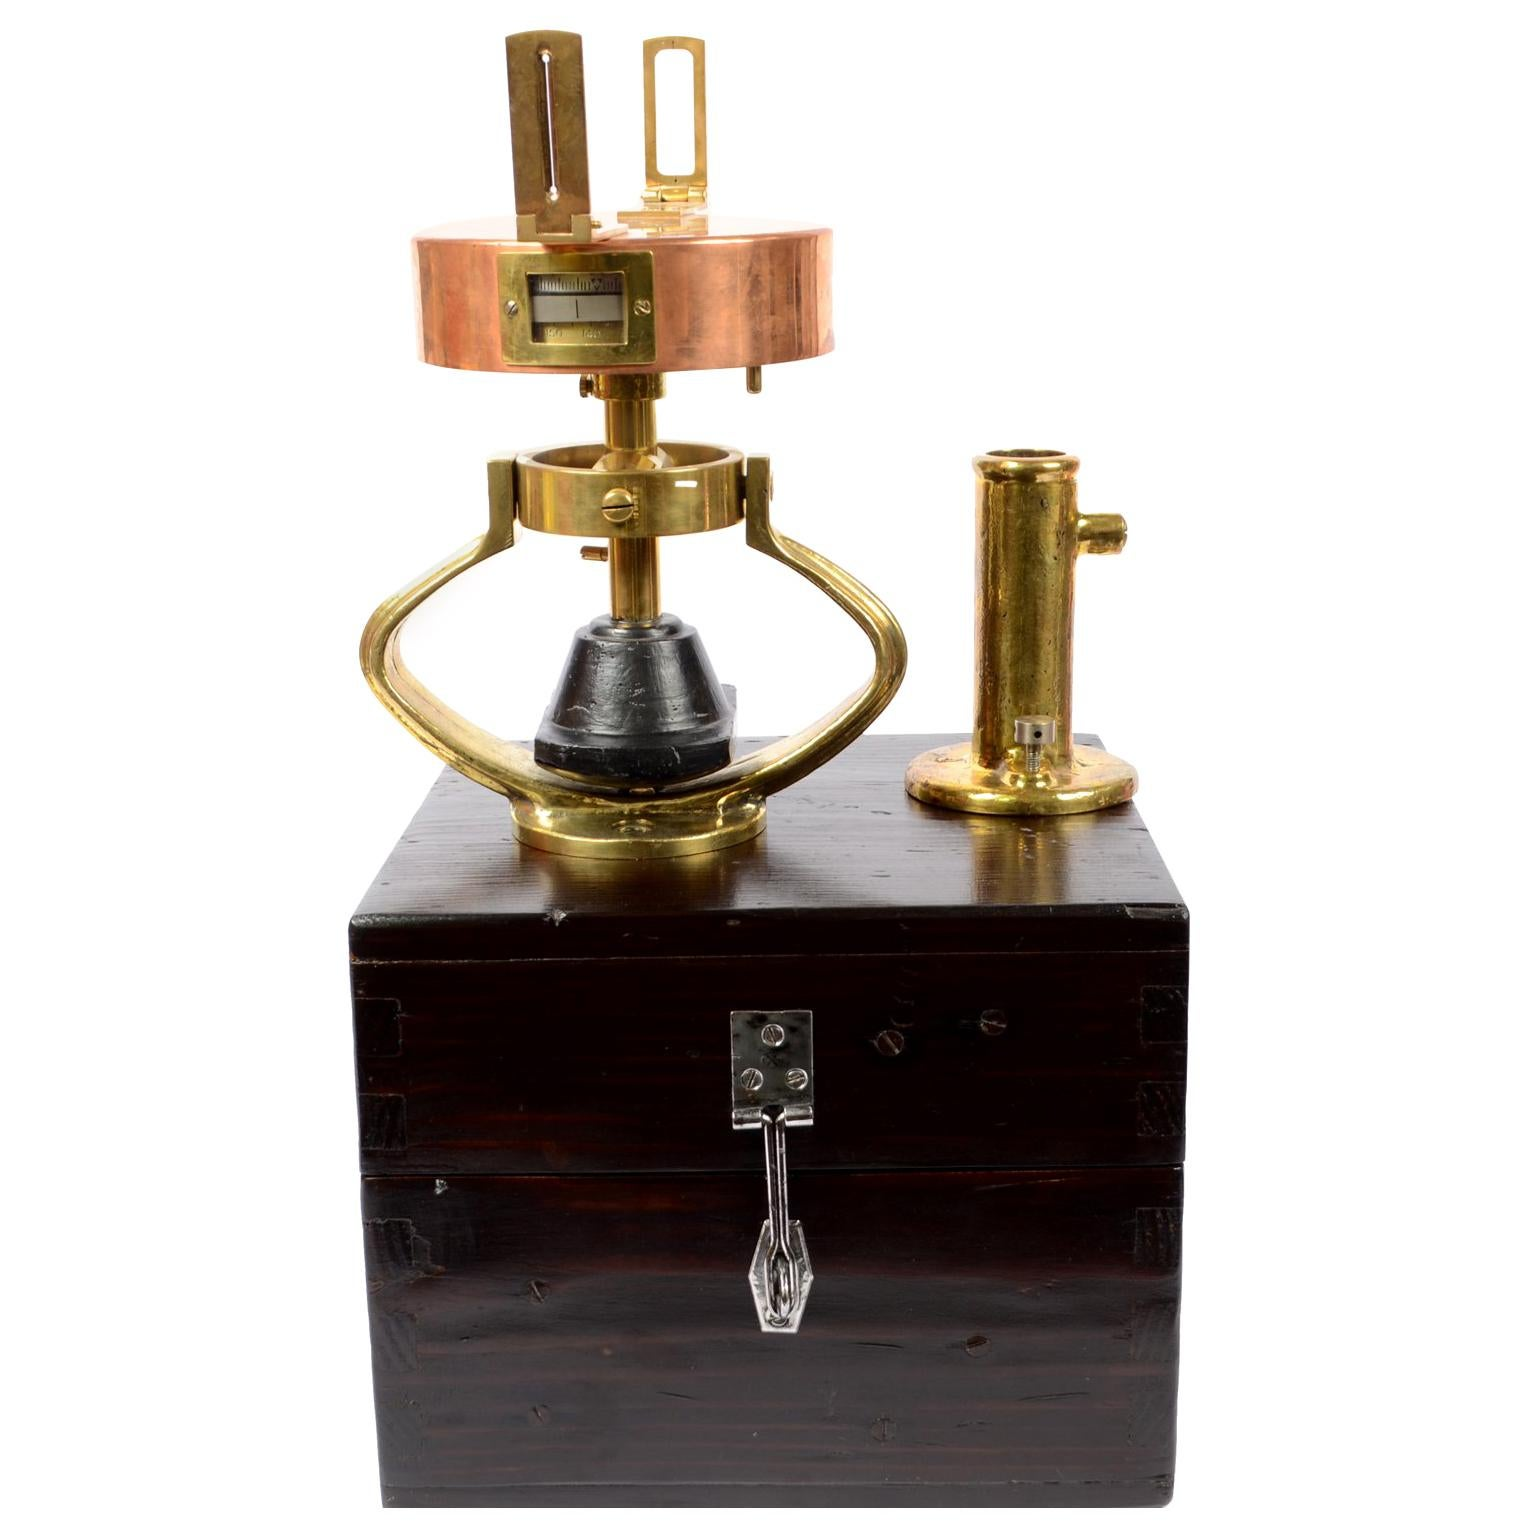 Italian Graphometer Complete with the Original Wooden Box